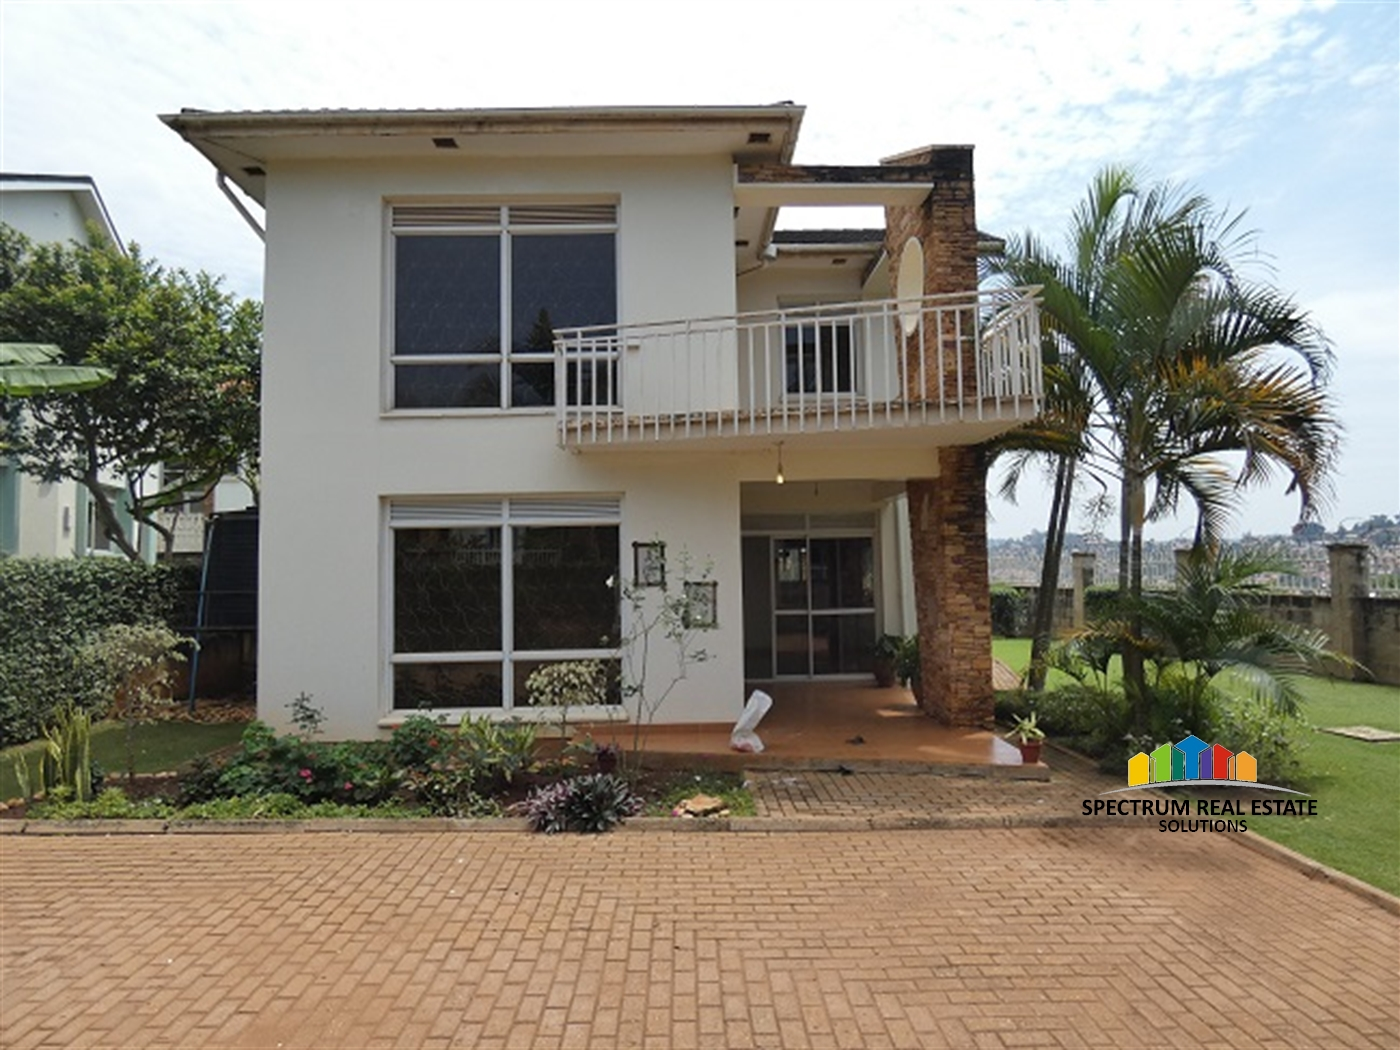 Storyed house for rent in Lubowa Kampala